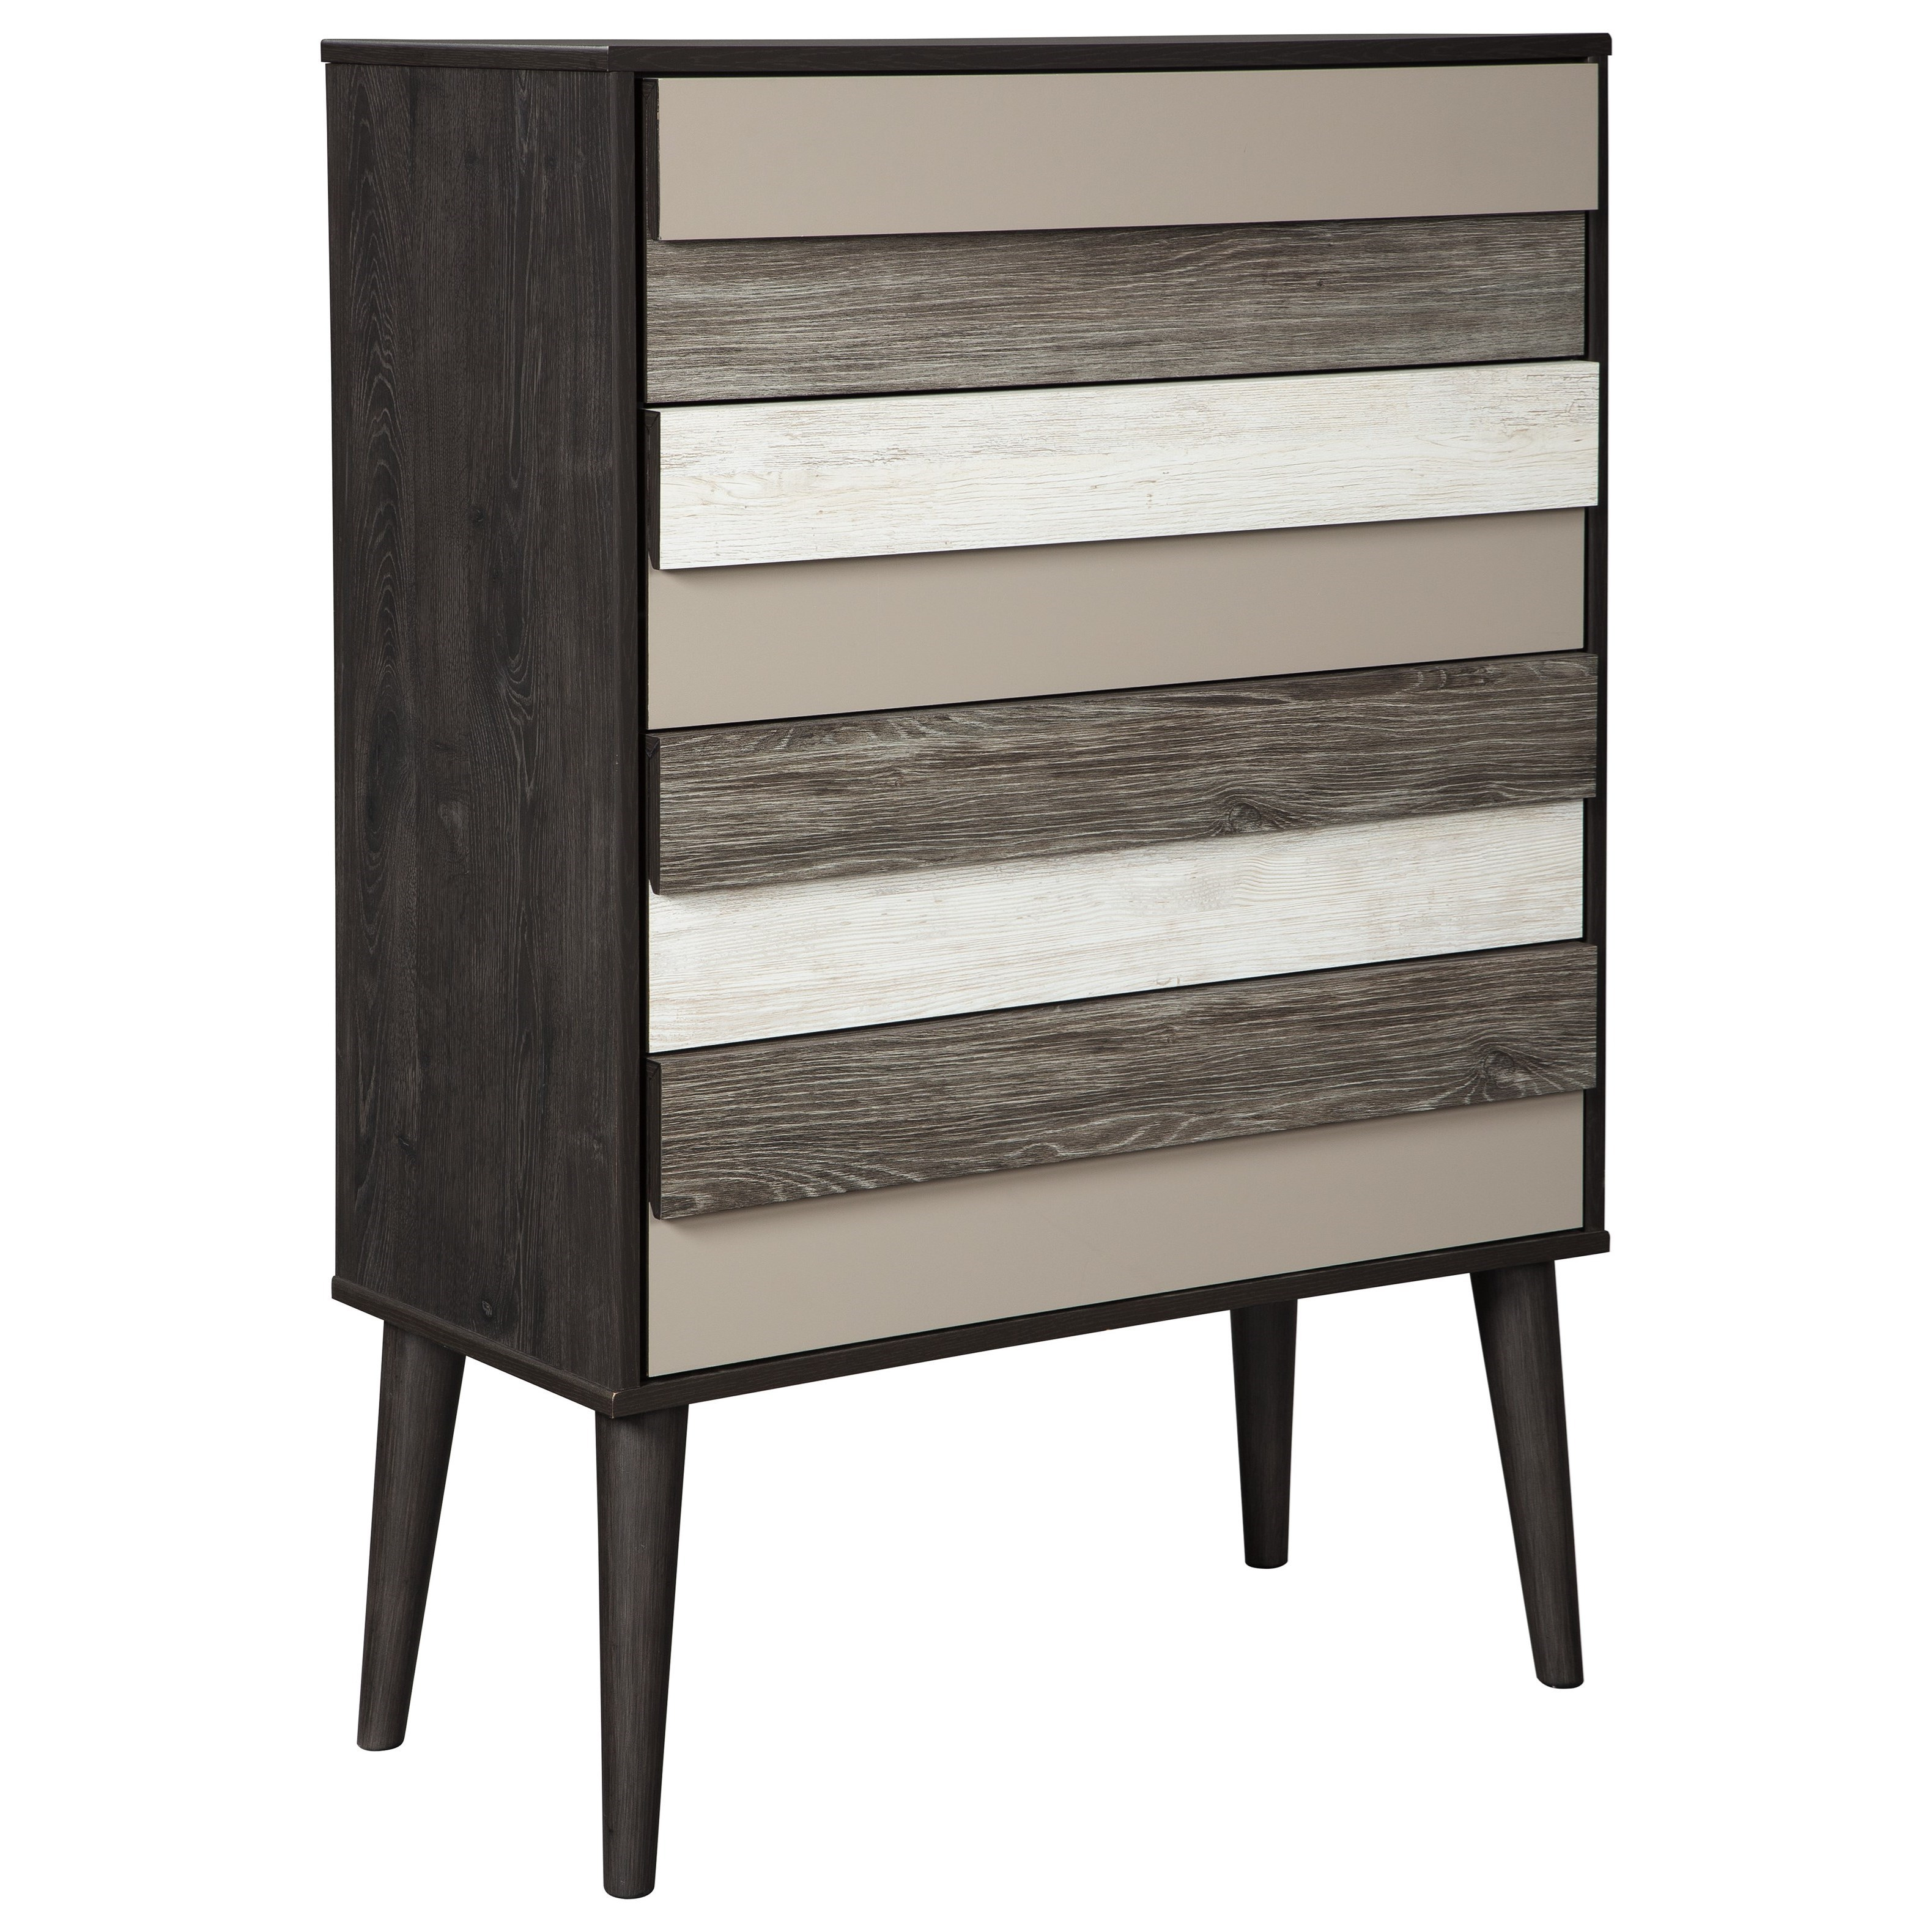 Signature Design by Ashley Micco 4 Drawer Chest - Item Number: B300-44